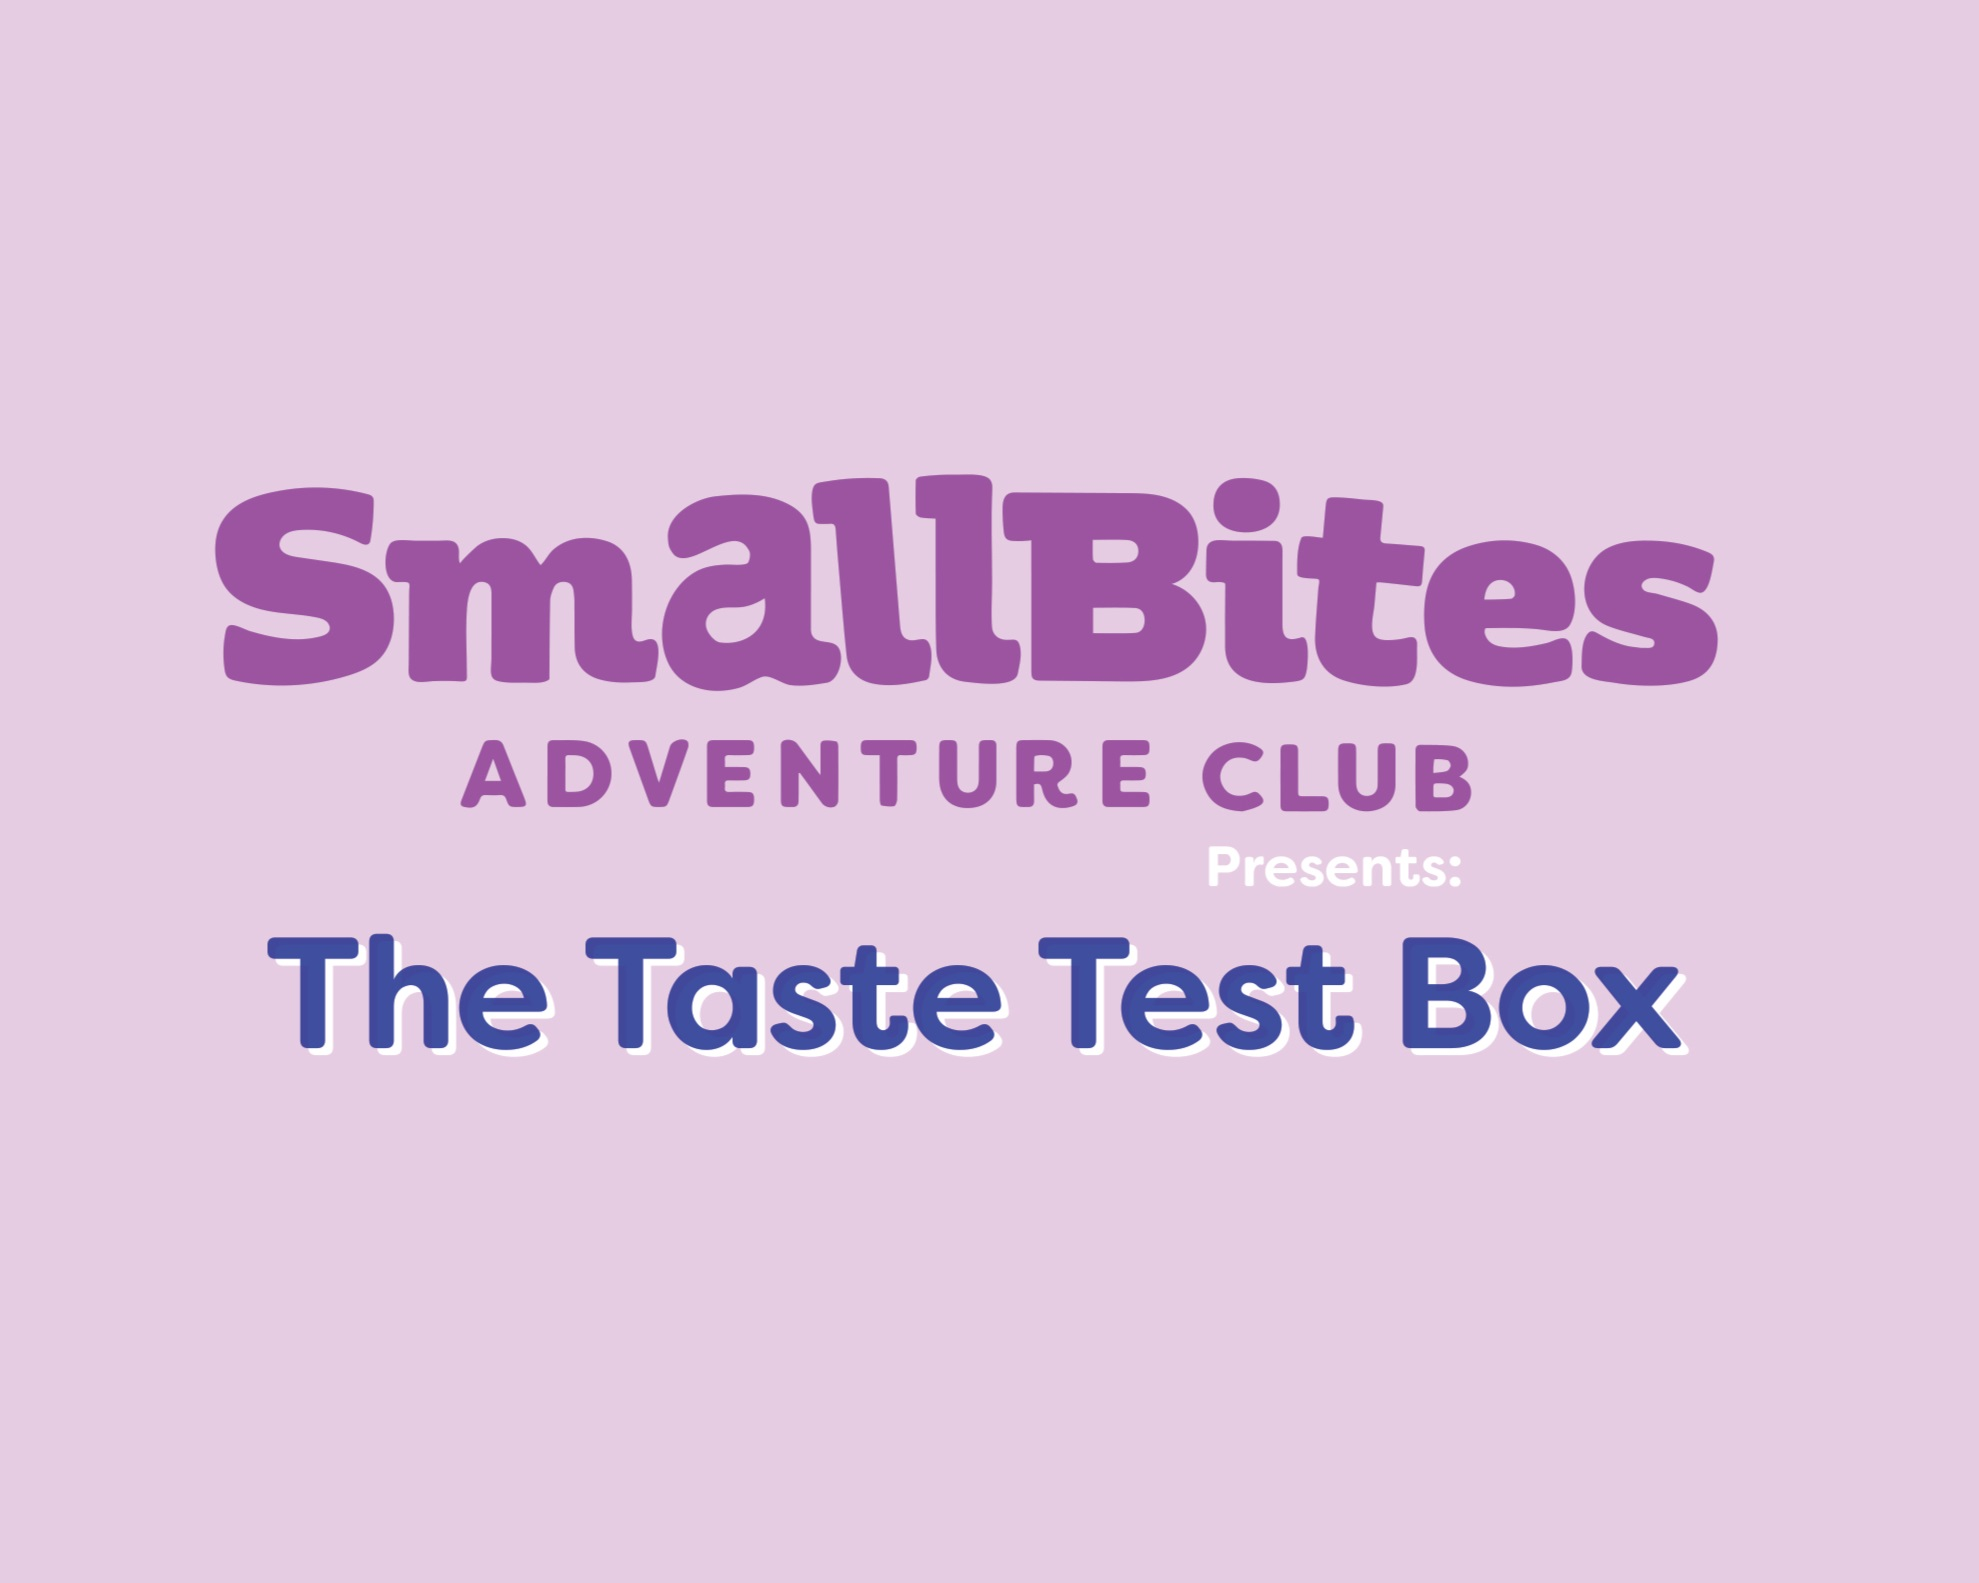 The Taste Test Box - ·SmallBites Adventure Club includes everything you need to create a hands-on recipe and taste test.